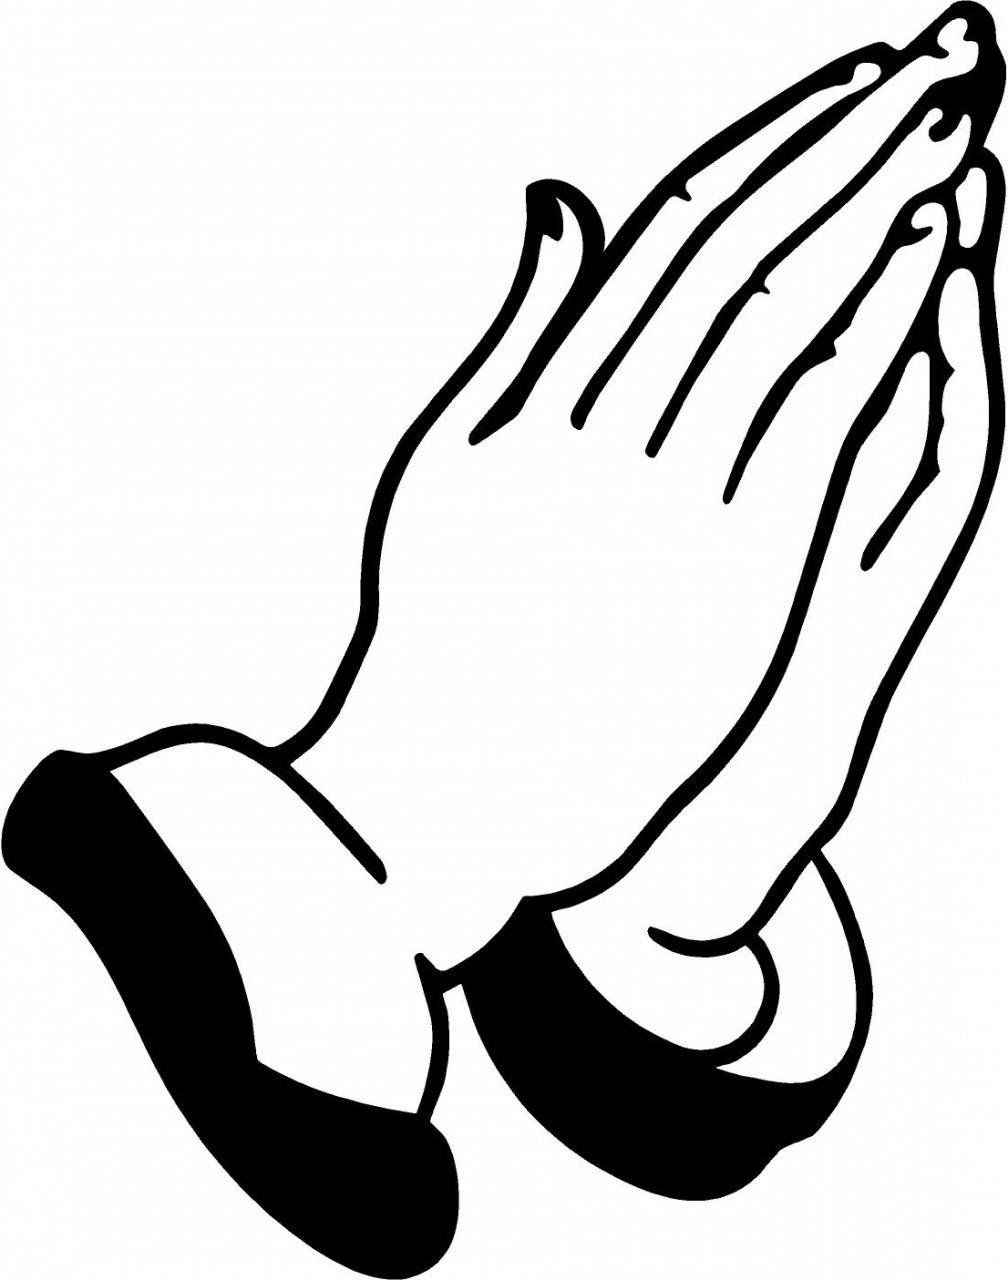 1008x1280 Praying Hands Unique Hands Vector Clipart Praying Library